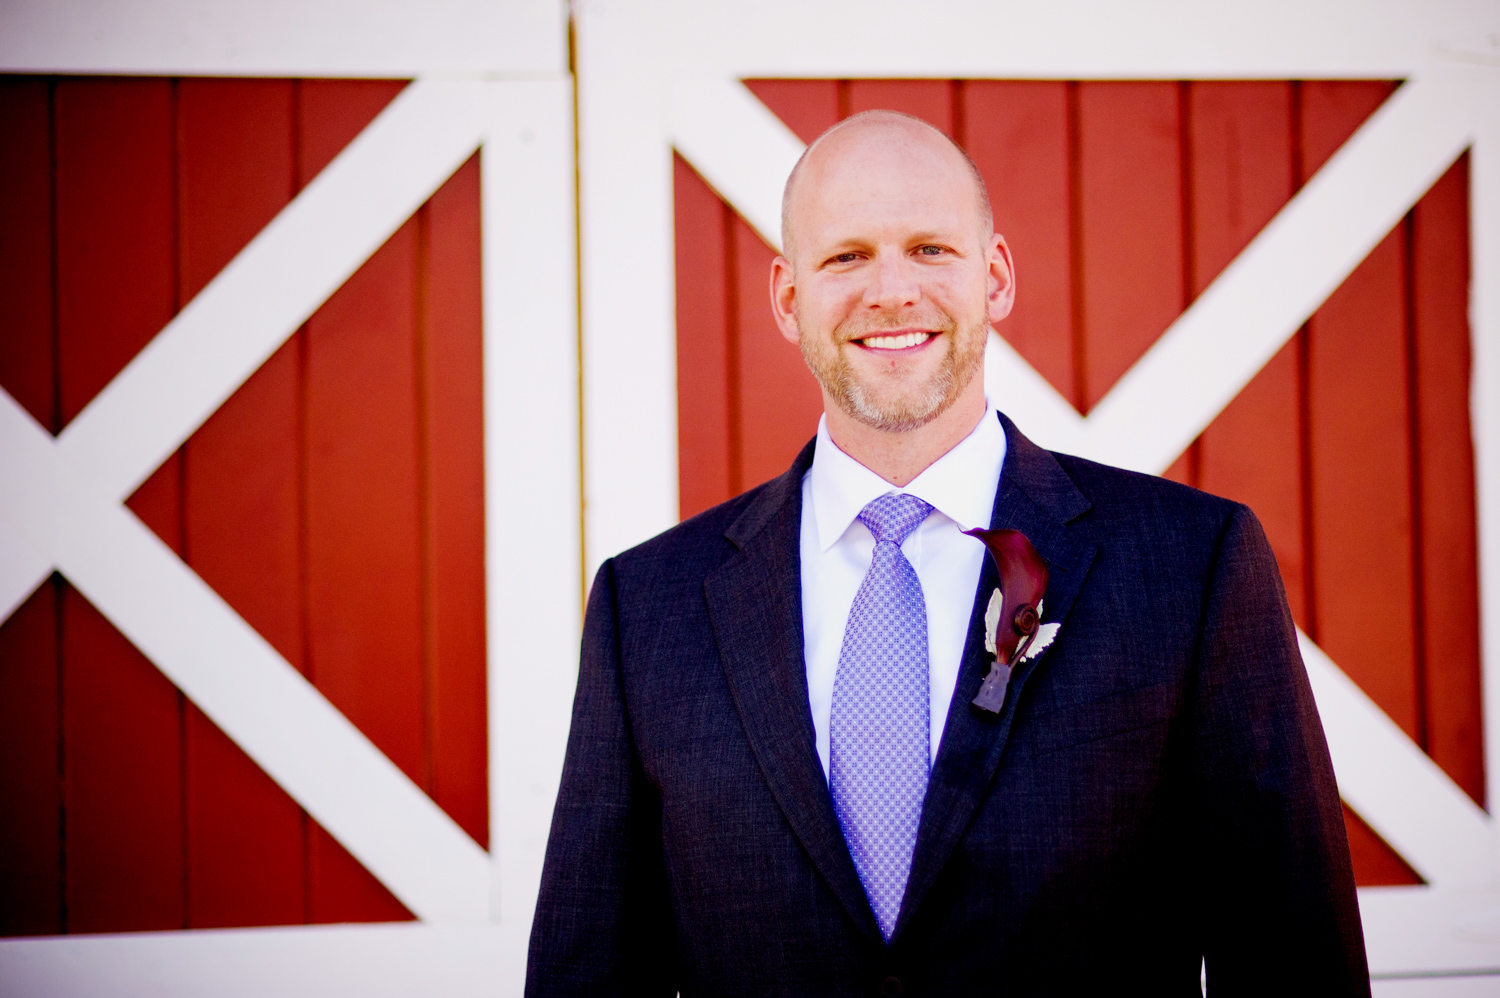 Crooked_Willow_Farms__Sedalia_Wedding_011.JPG